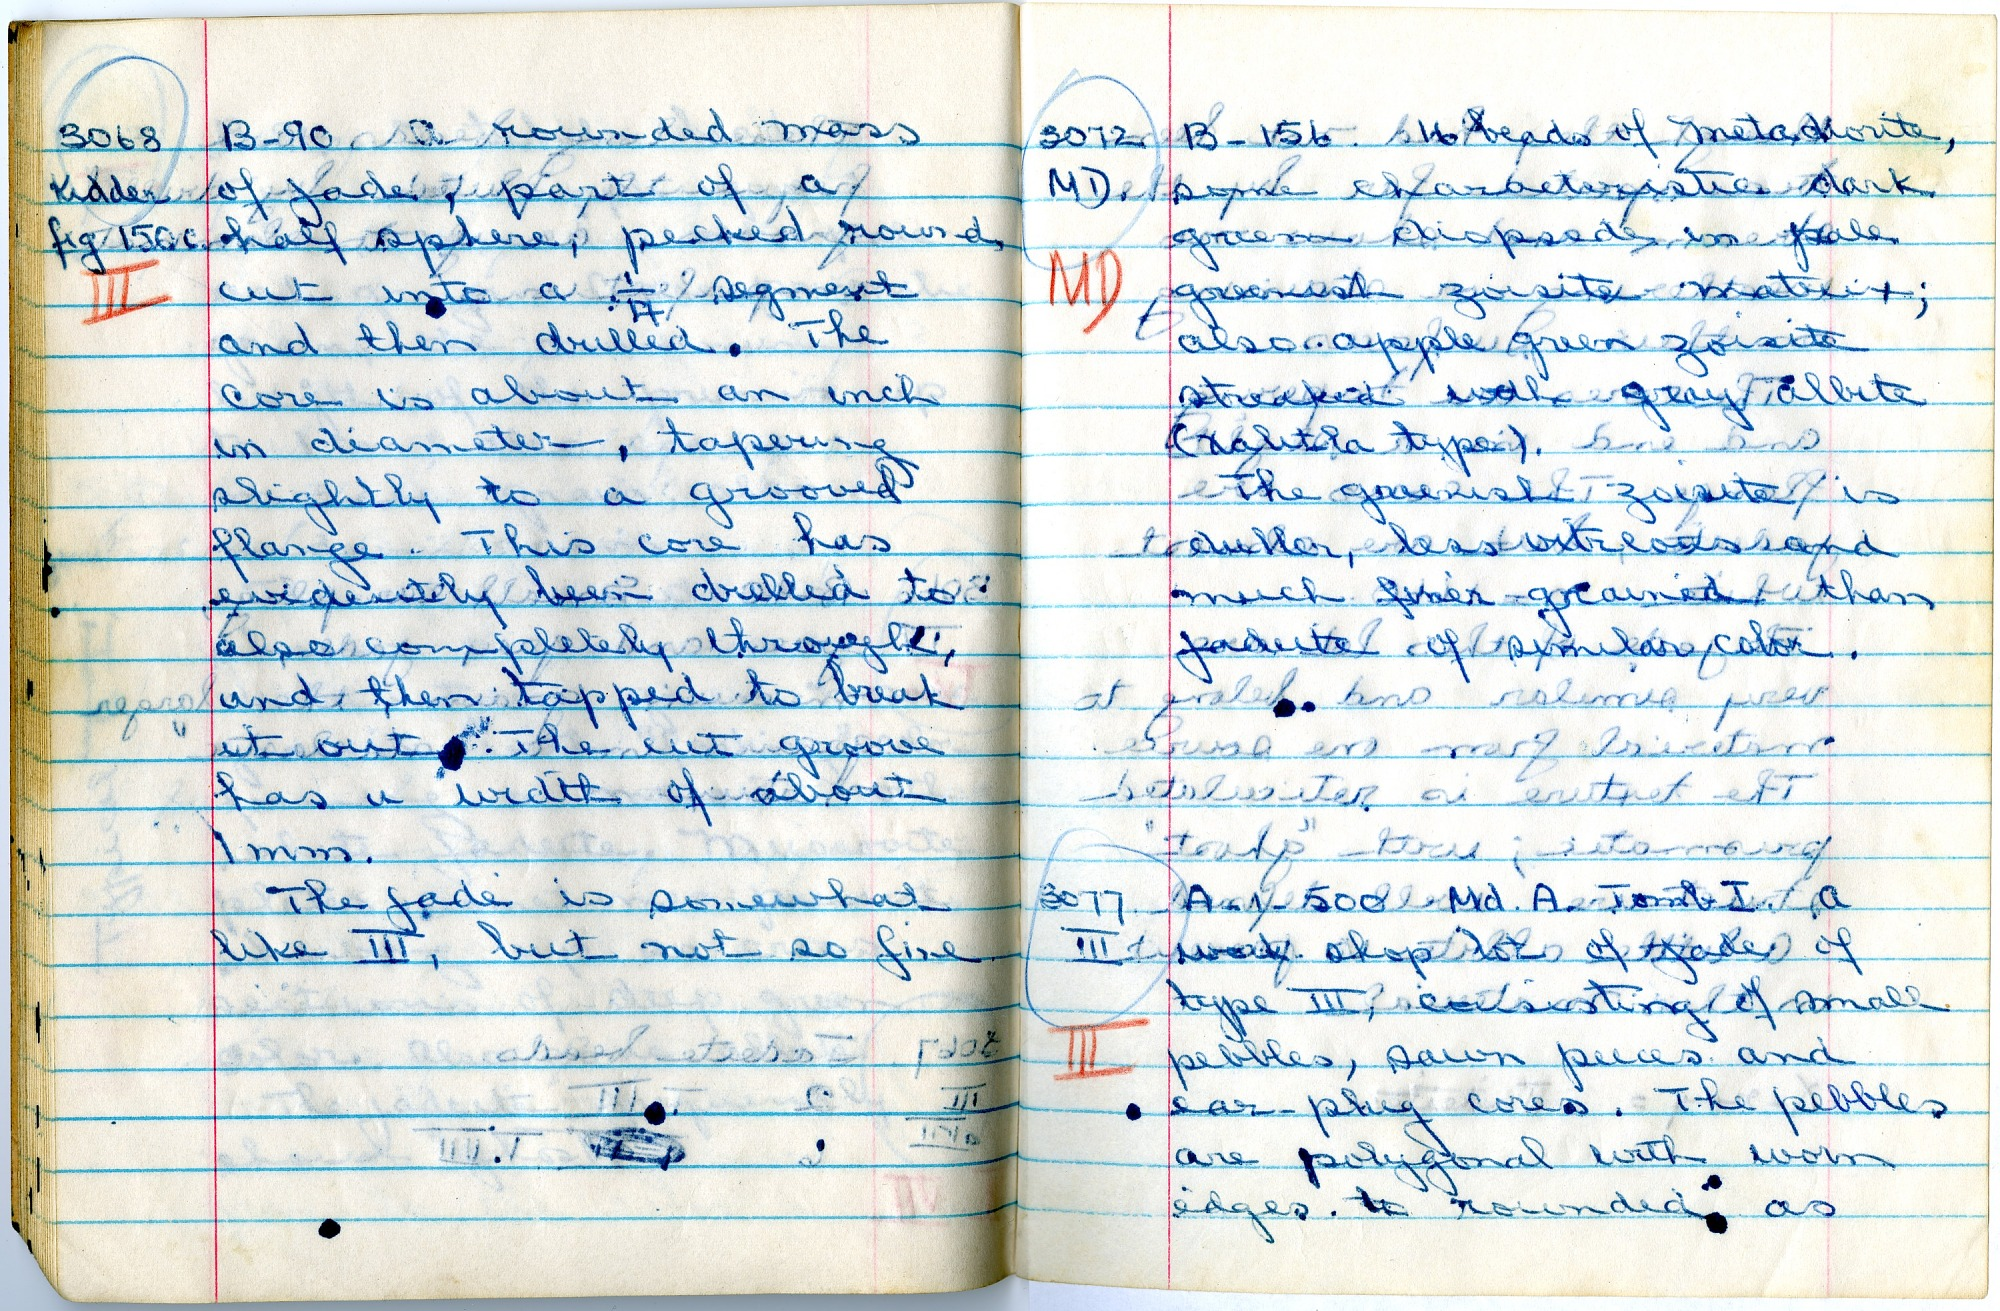 Page from Foshag's Notebook with Description of Jade Samples